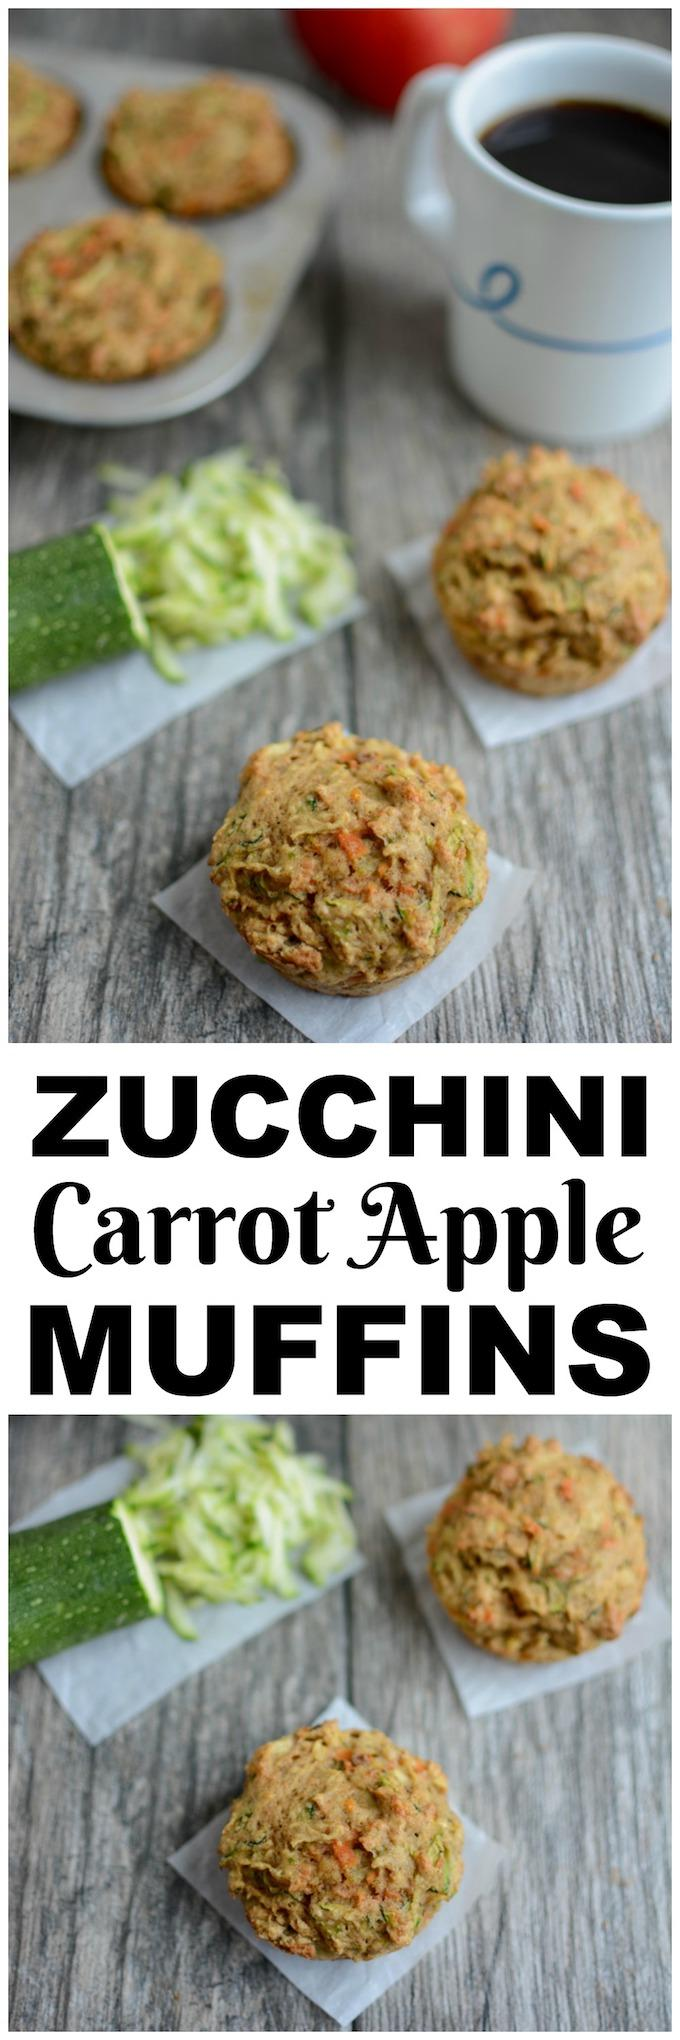 These healthy Zucchini Carrot Apple Muffins are packed with fruits and vegetables and make the perfect kid-friendly breakfast or snack!